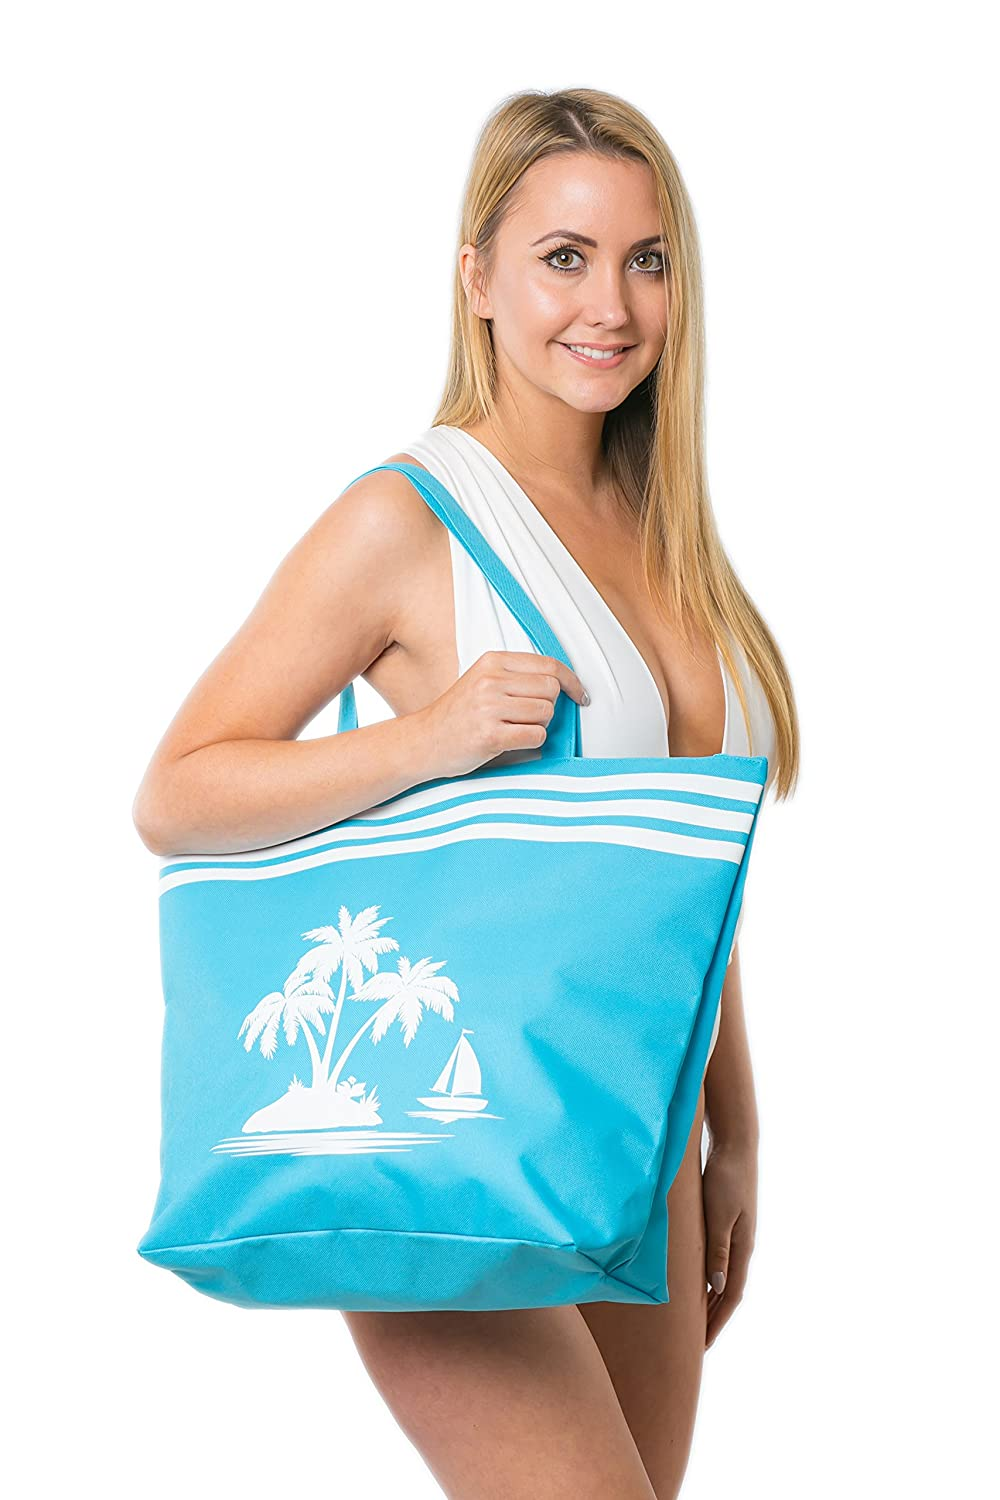 Beach Bag Womens Large Summer Canvas Tote Bags Zip Closure